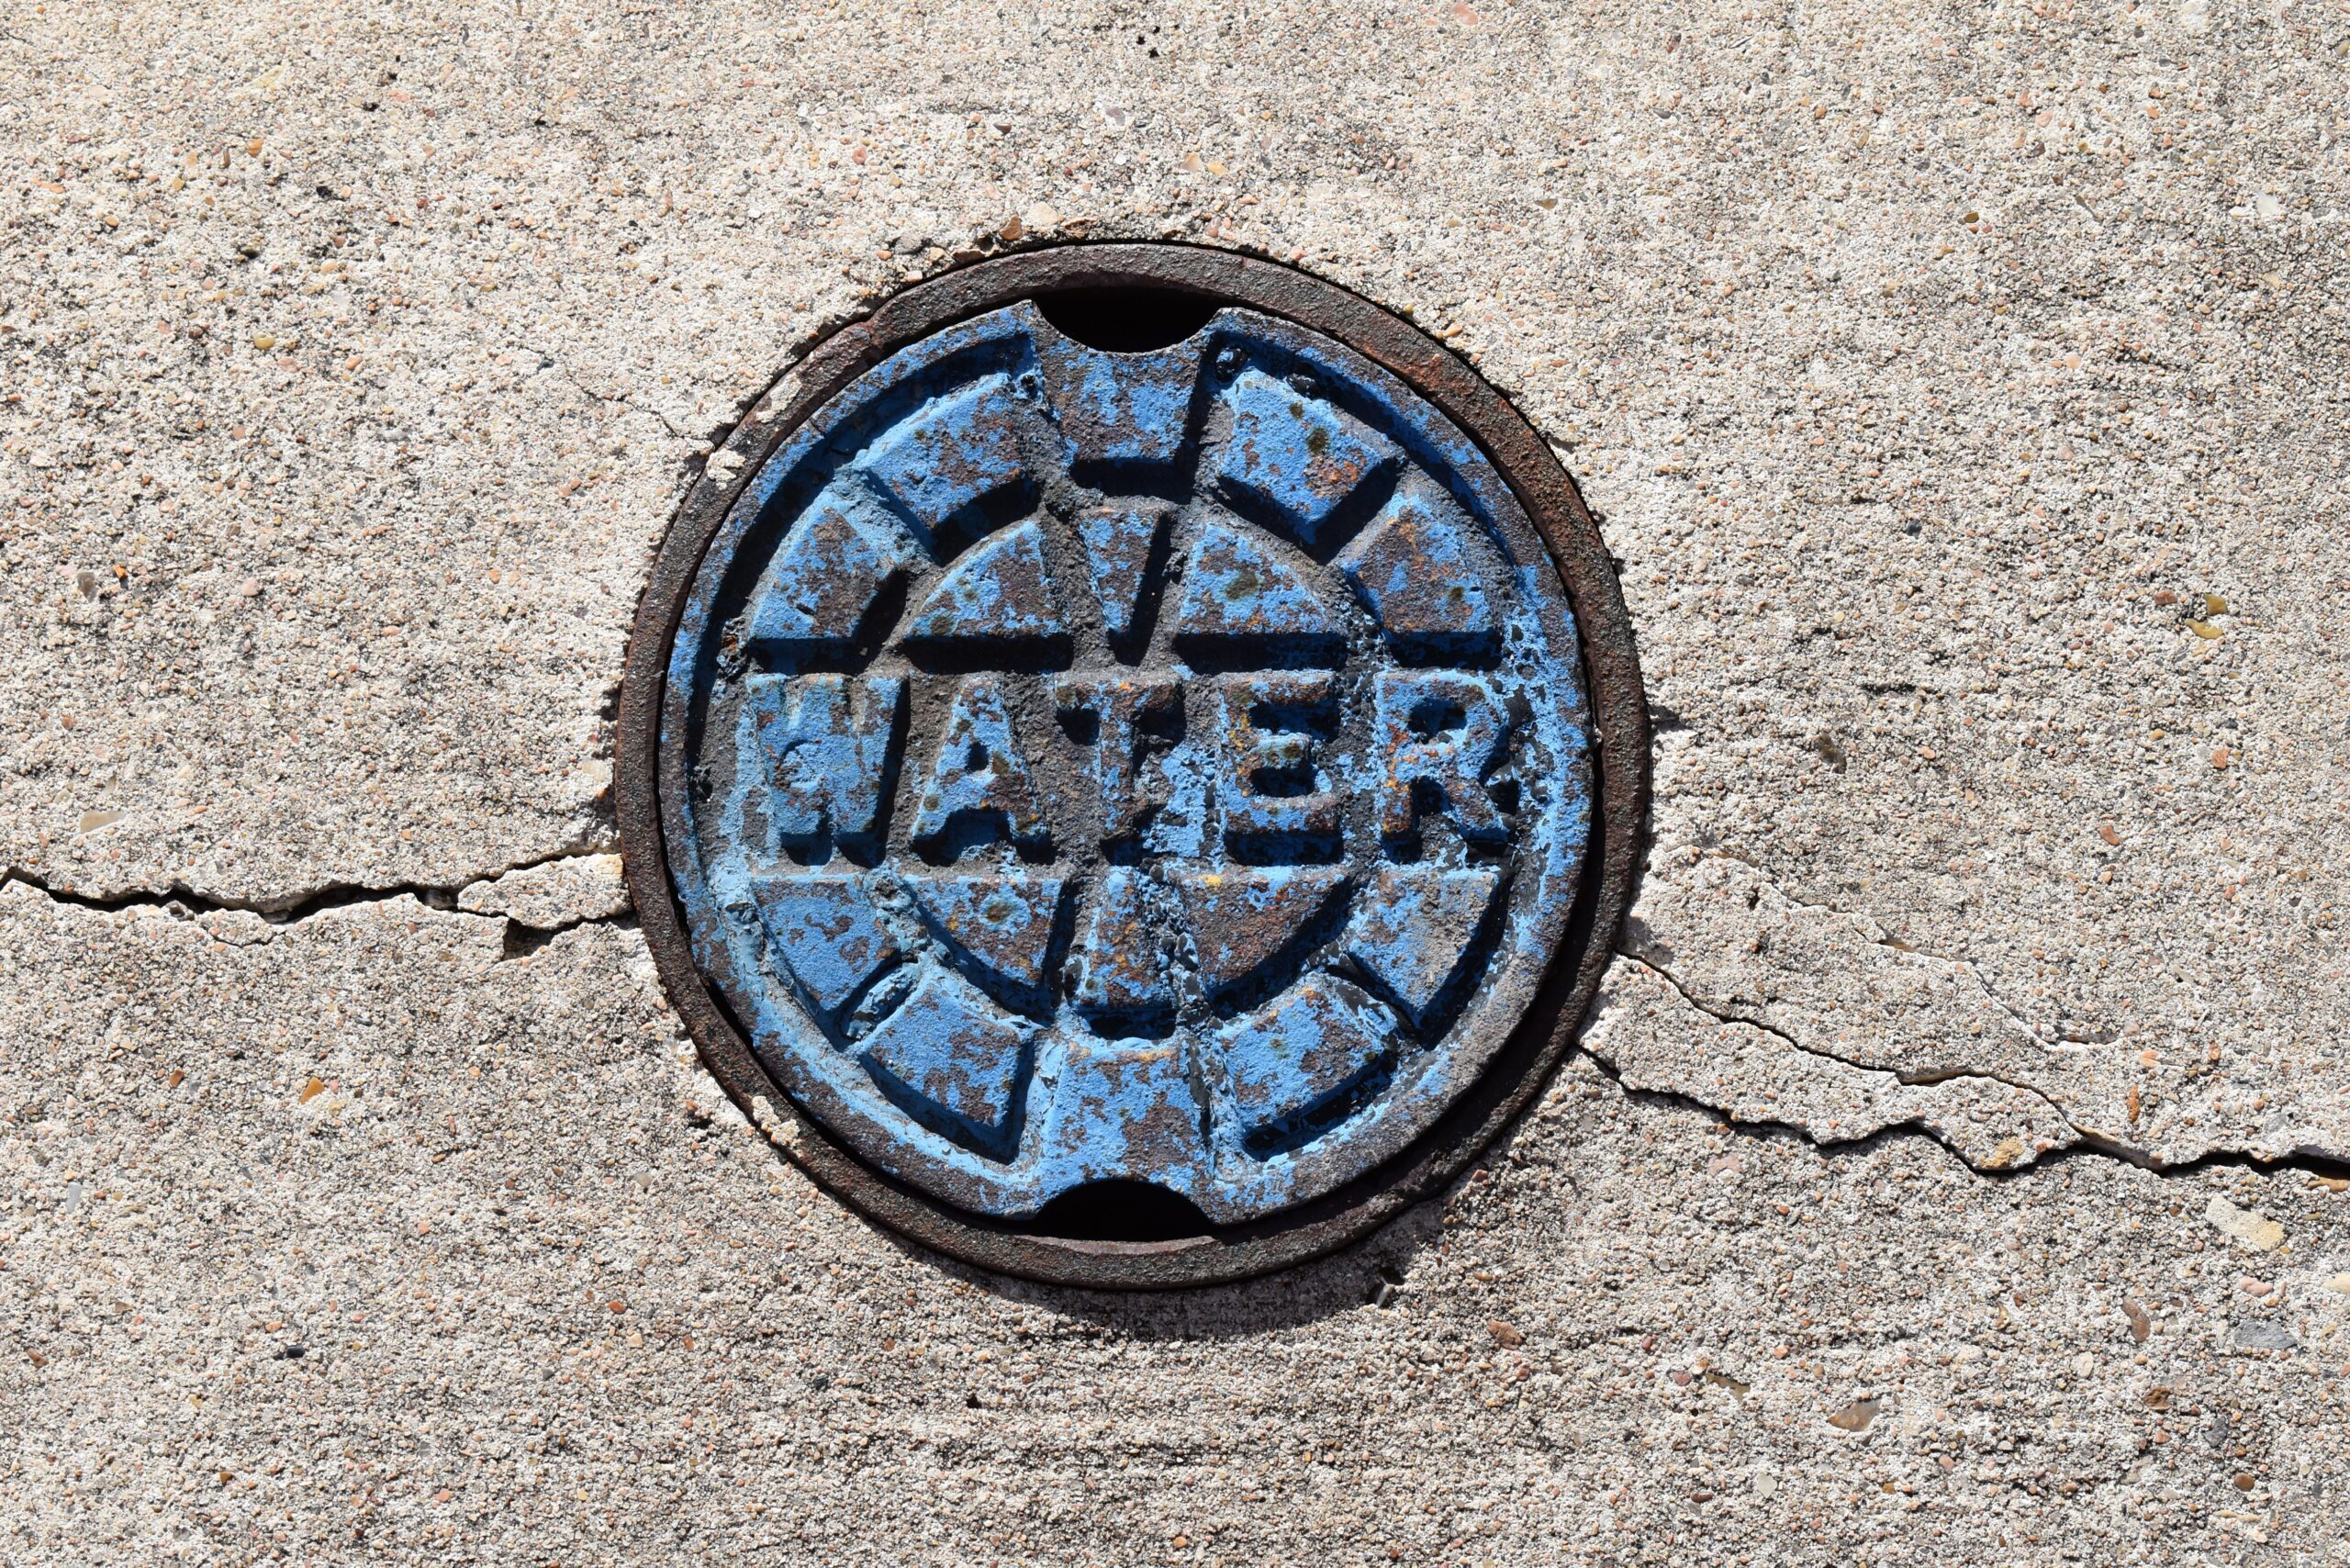 Photo by Greg Jewett on Unsplash. Water shutoff valve cover. Blue paint is starting to flake off.